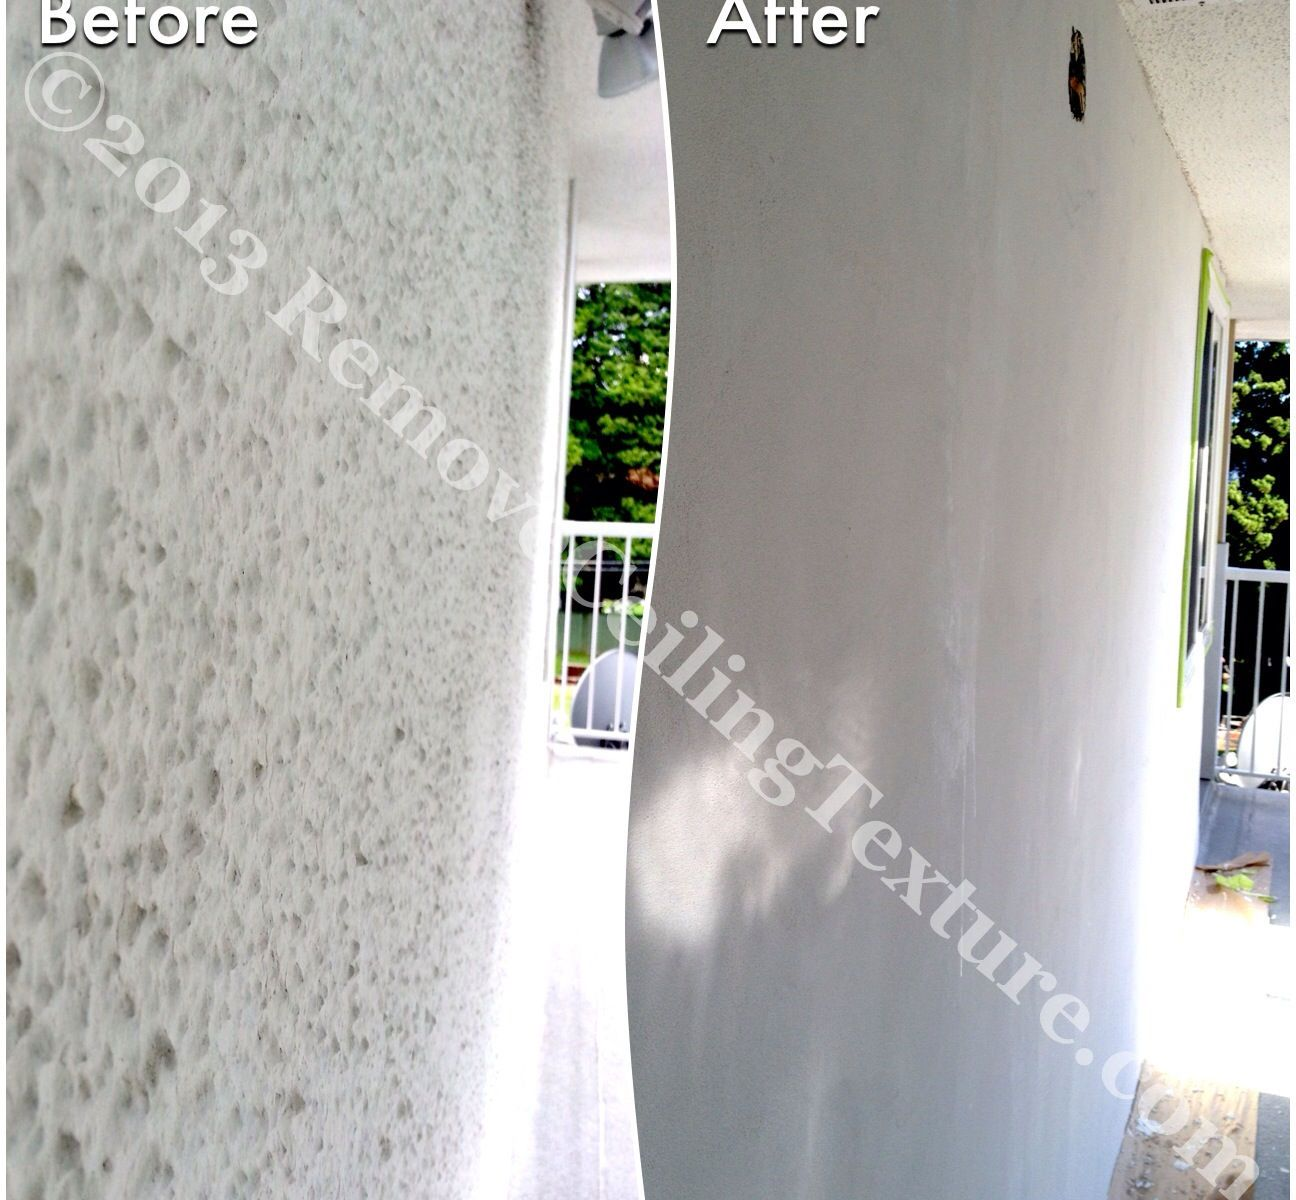 The homeowners said goodbye to their exterior stucco.